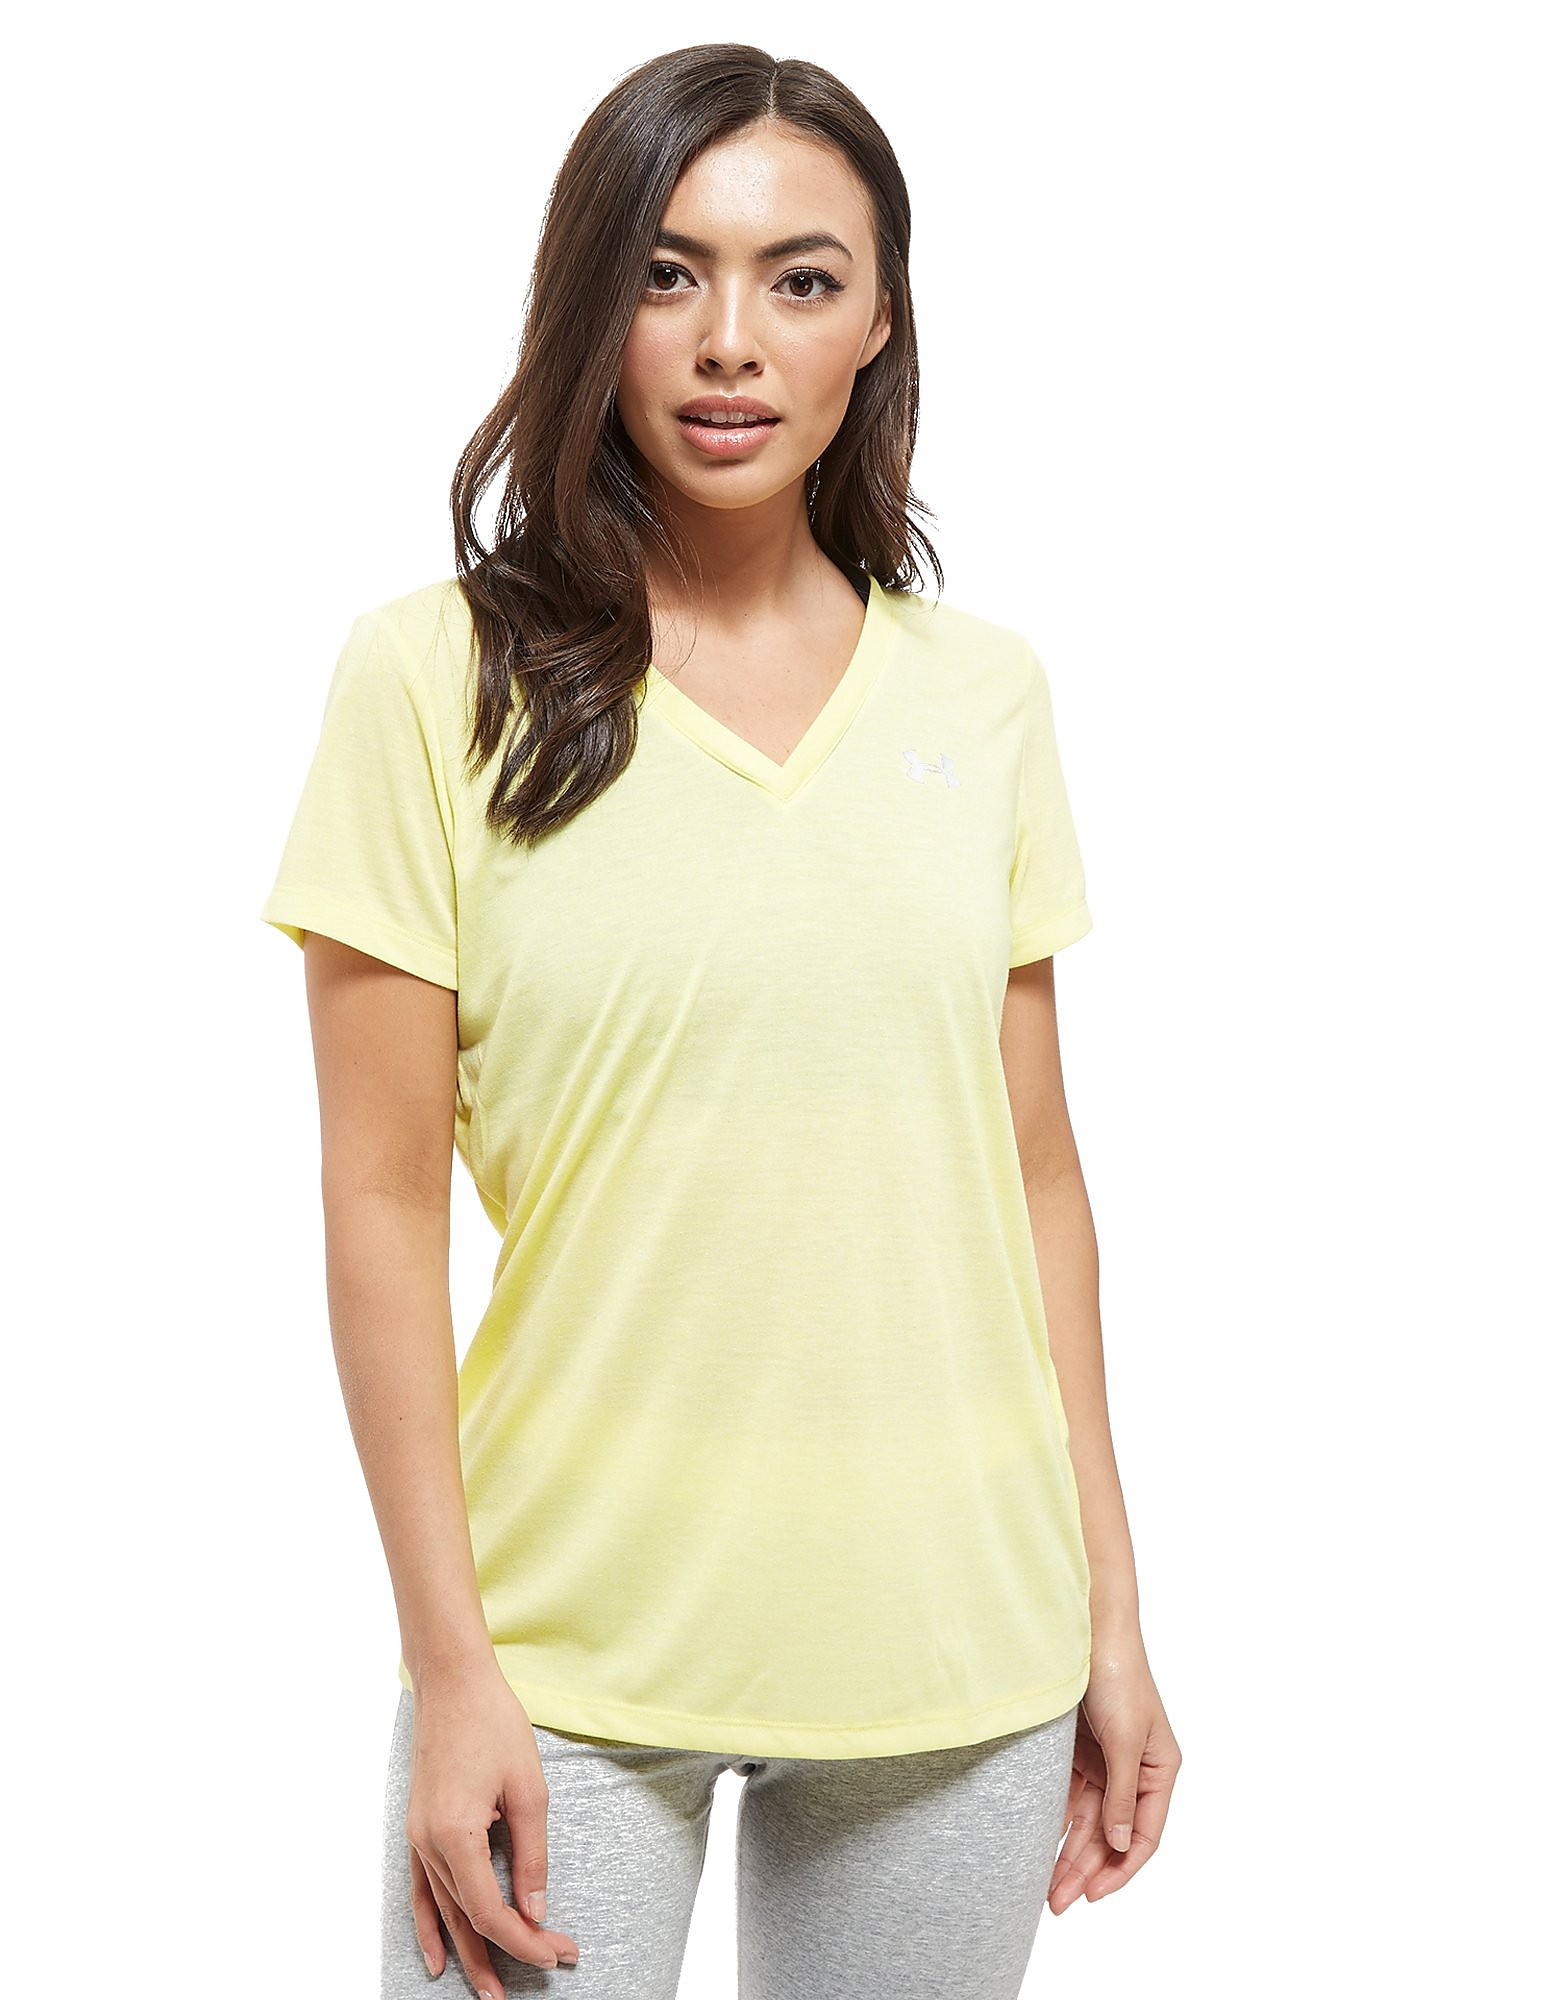 Under Armour Threadborne V-Neck Short Sleeve T-Shirt